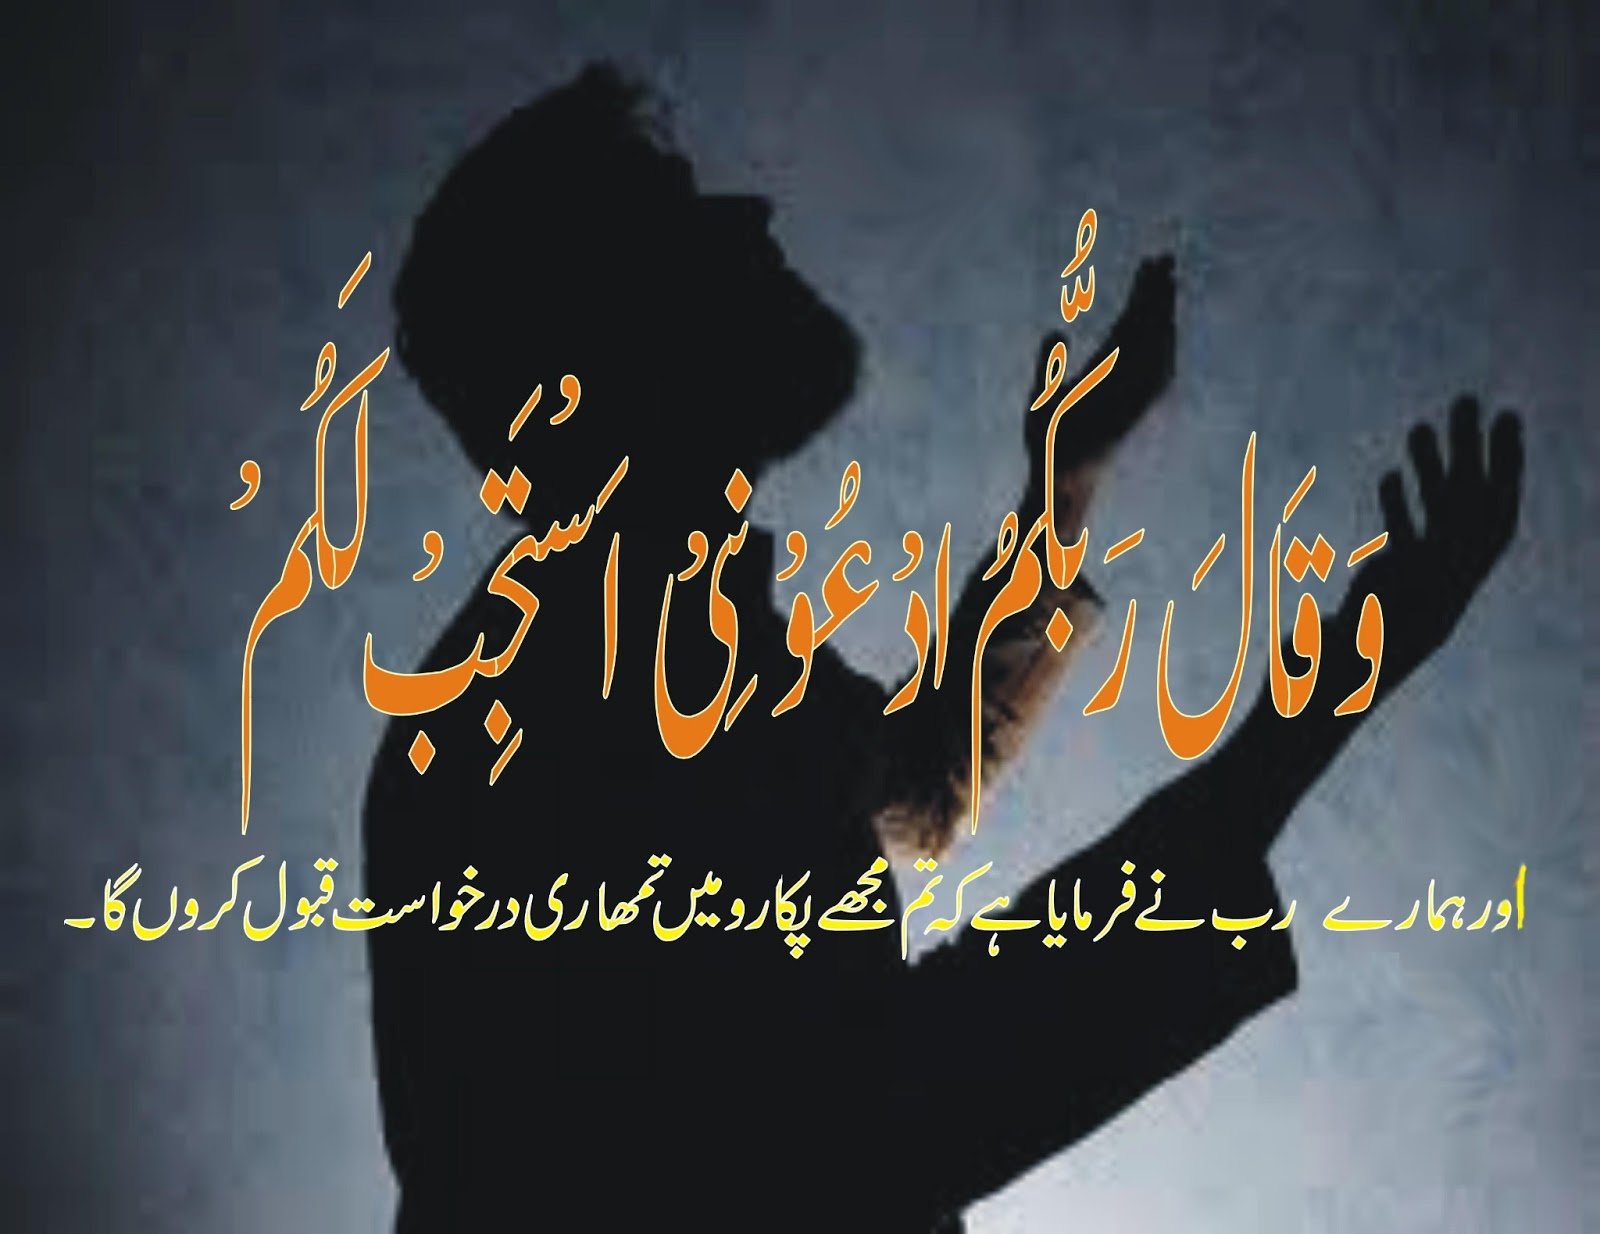 Islamic Dua Wallpaper In Urdu For Pc Quotes About Dua In